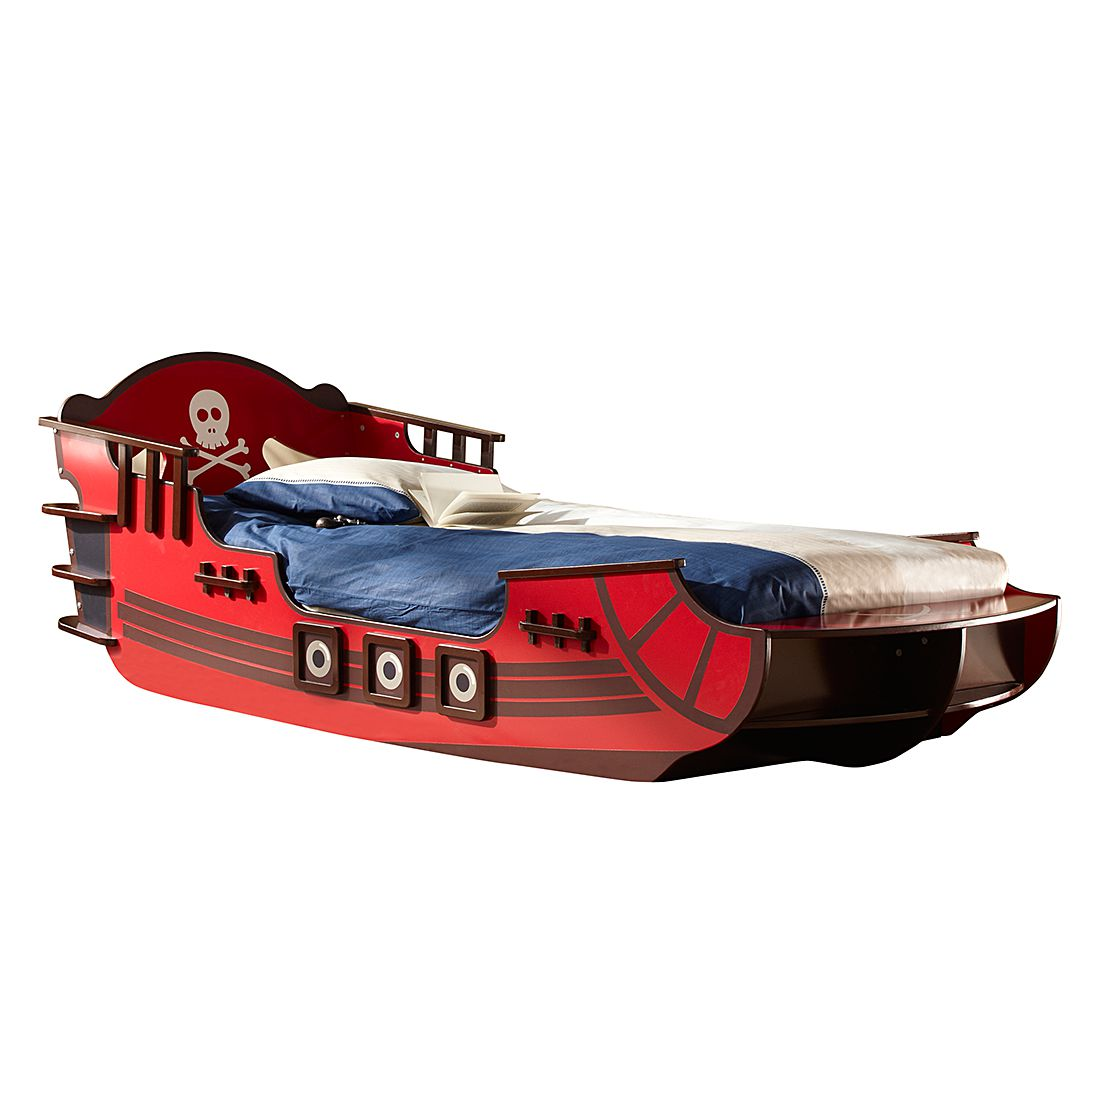 Home 24 - Lit pirate crazy shark - rouge / marron, kids club collection